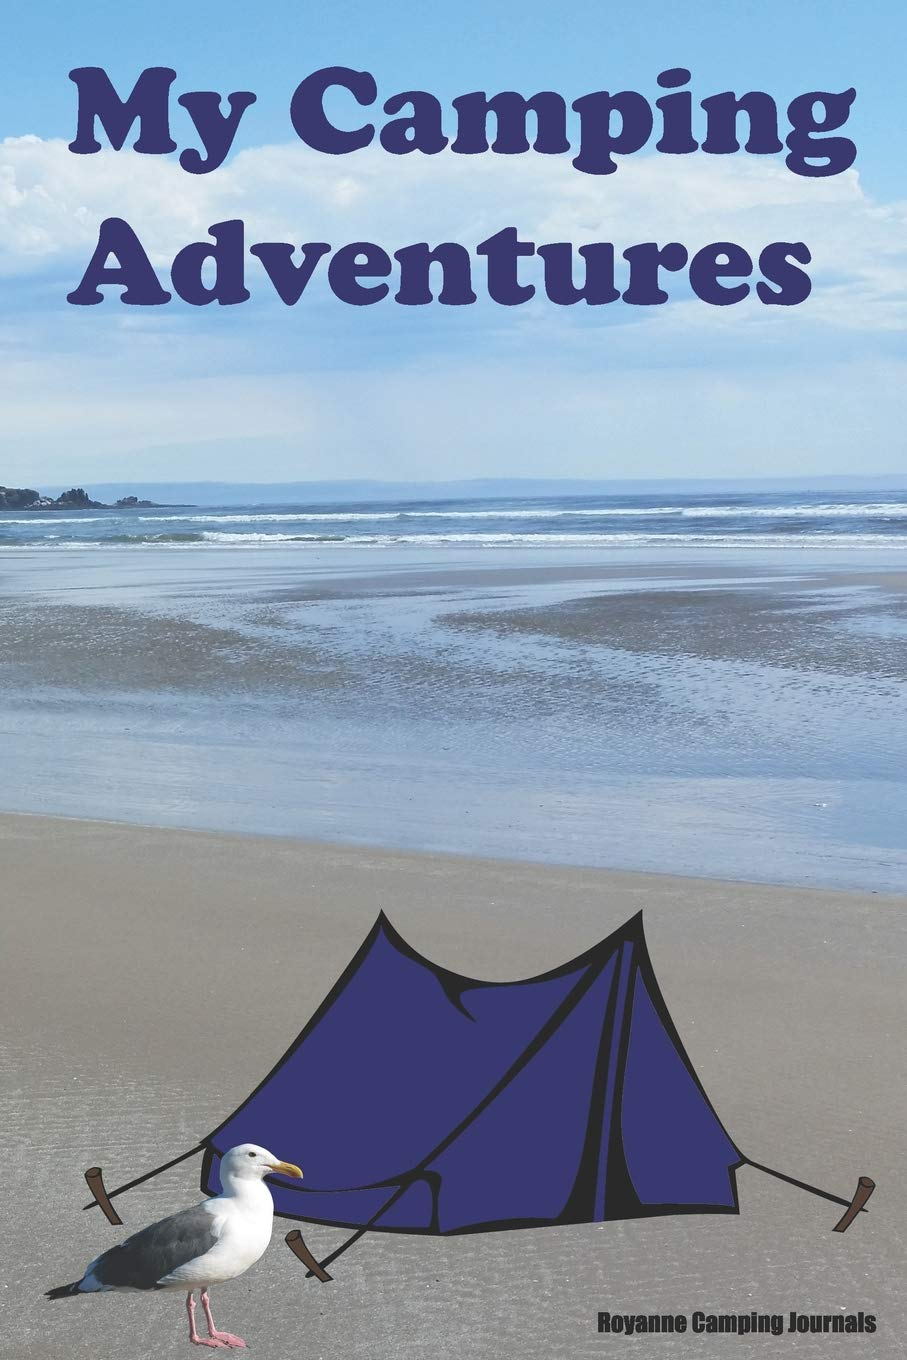 64a7e4b3d55 My Camping Adventures  Beach Ocean Coast Cover - Prompt Journal and  Activity Book for Kids who Enjoy the Outdoors